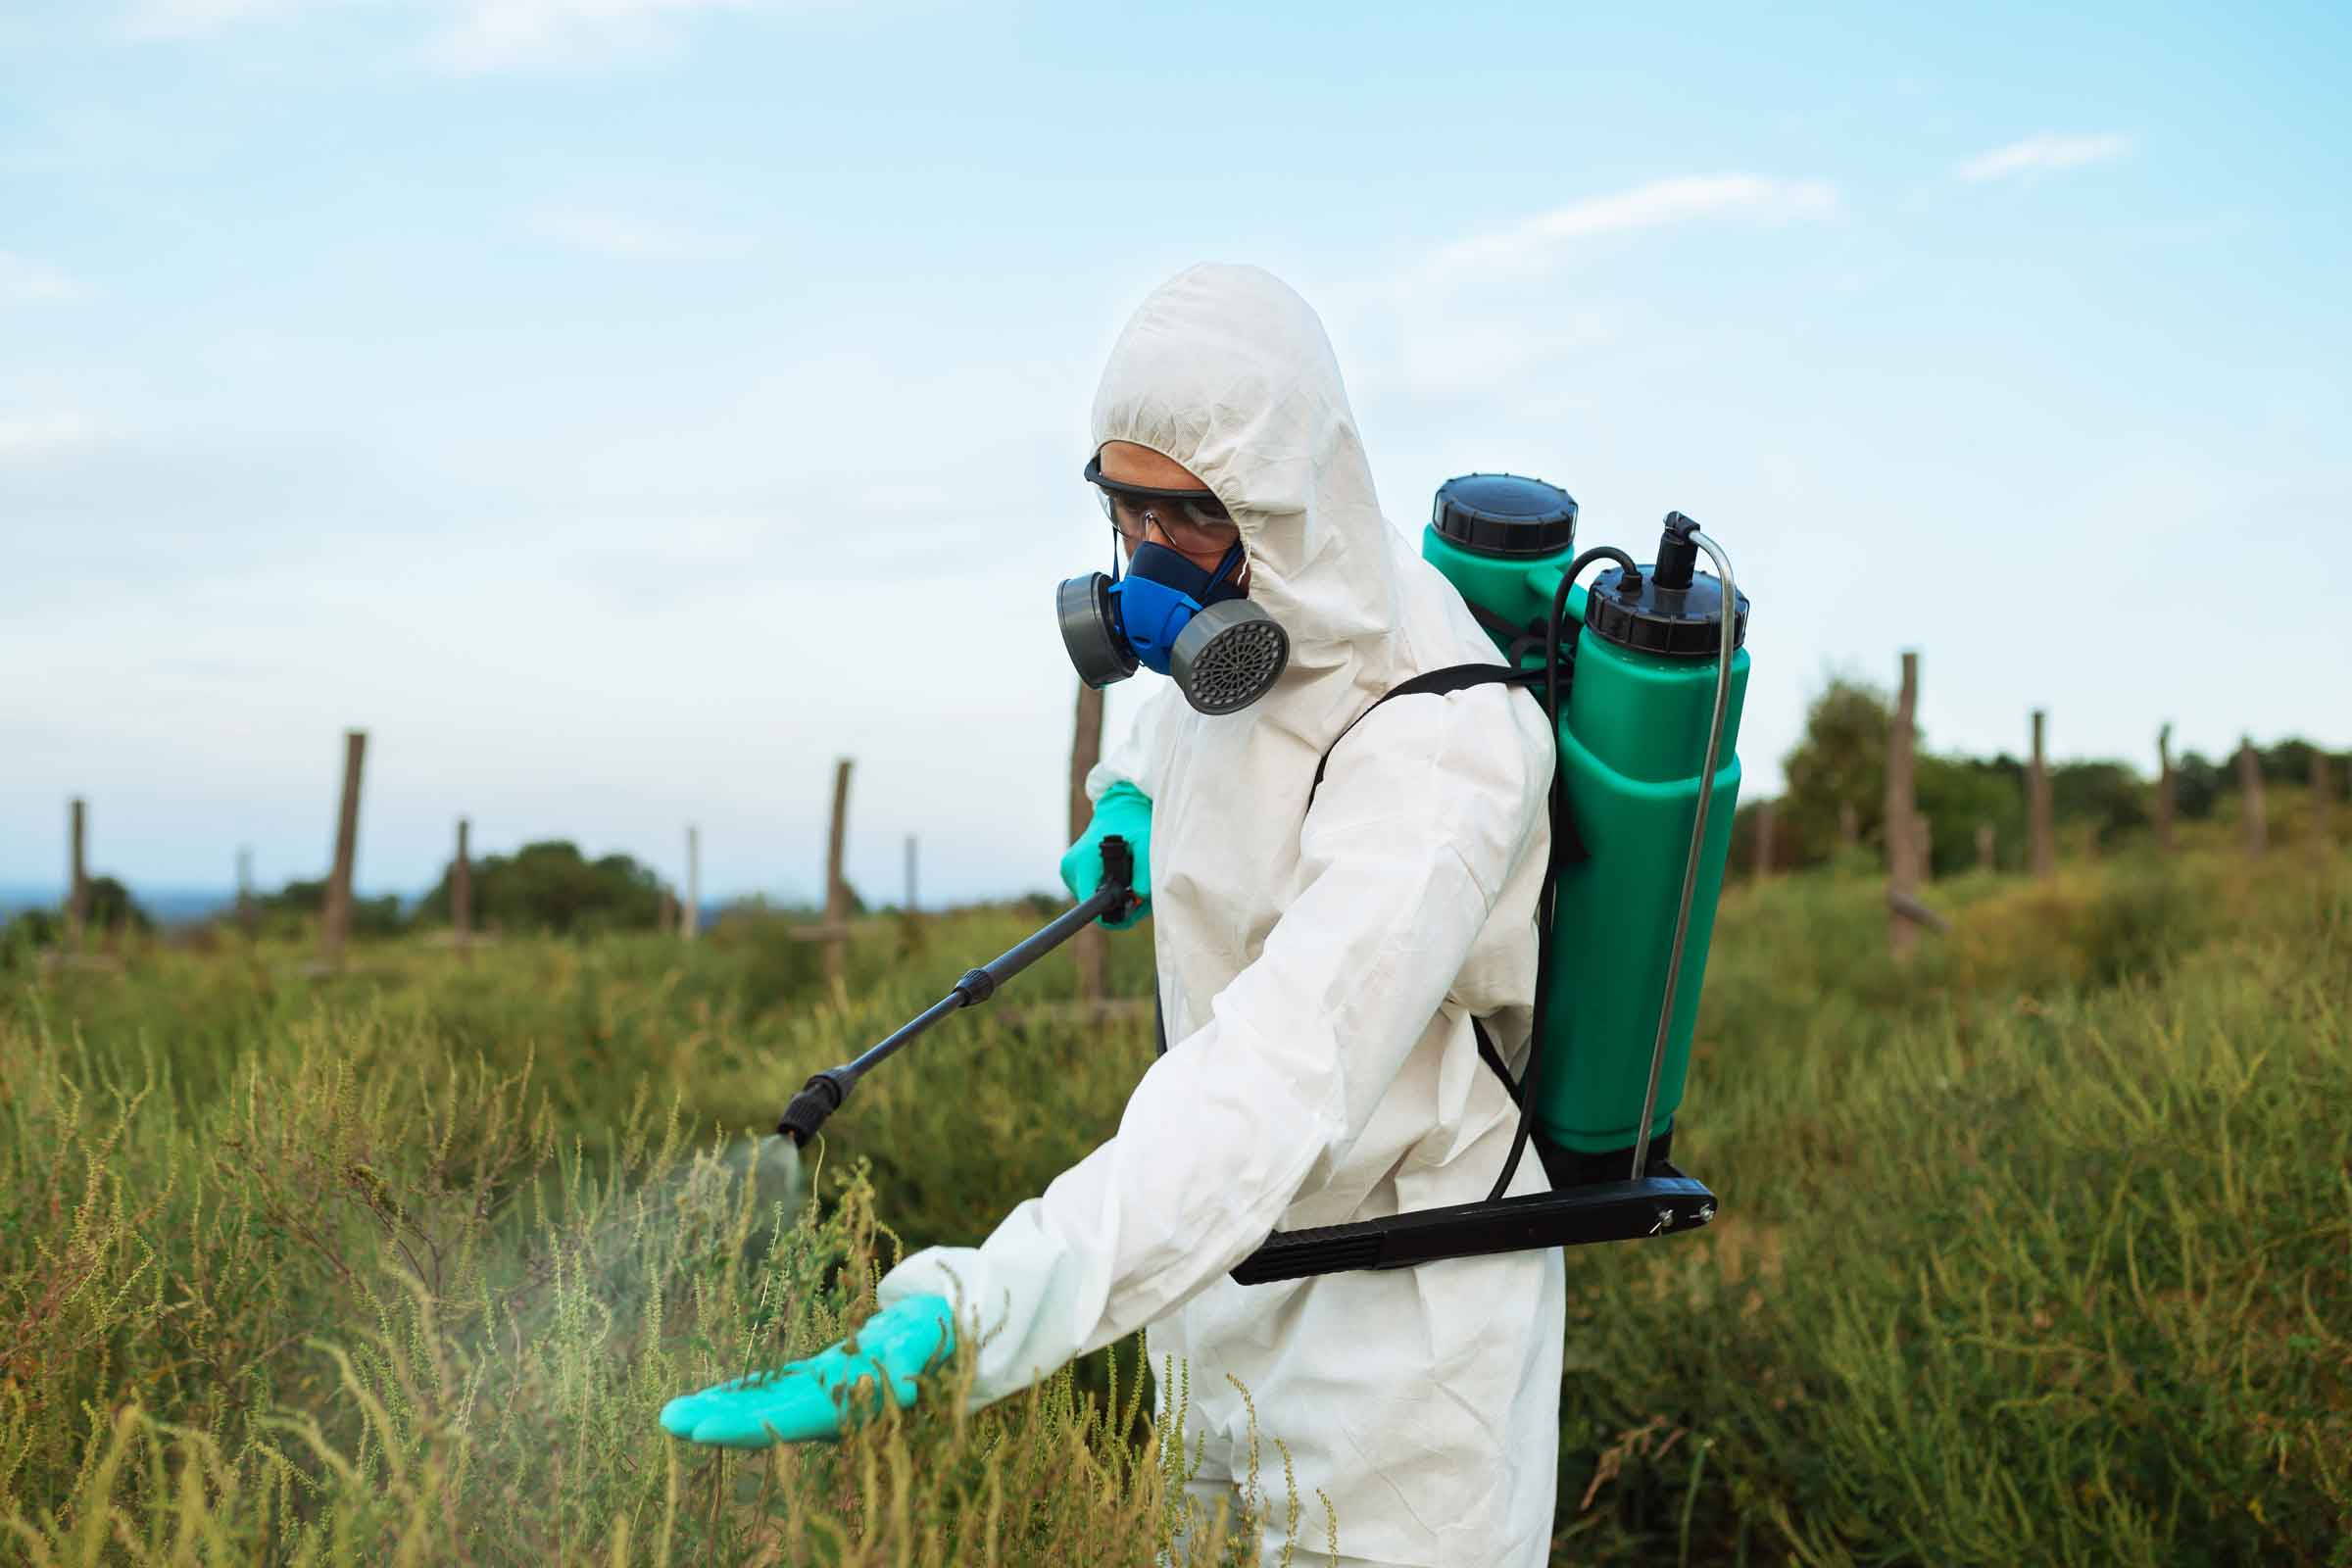 Agriculture pest control - Worker in protective workwear in weed control and spraying invasive plant